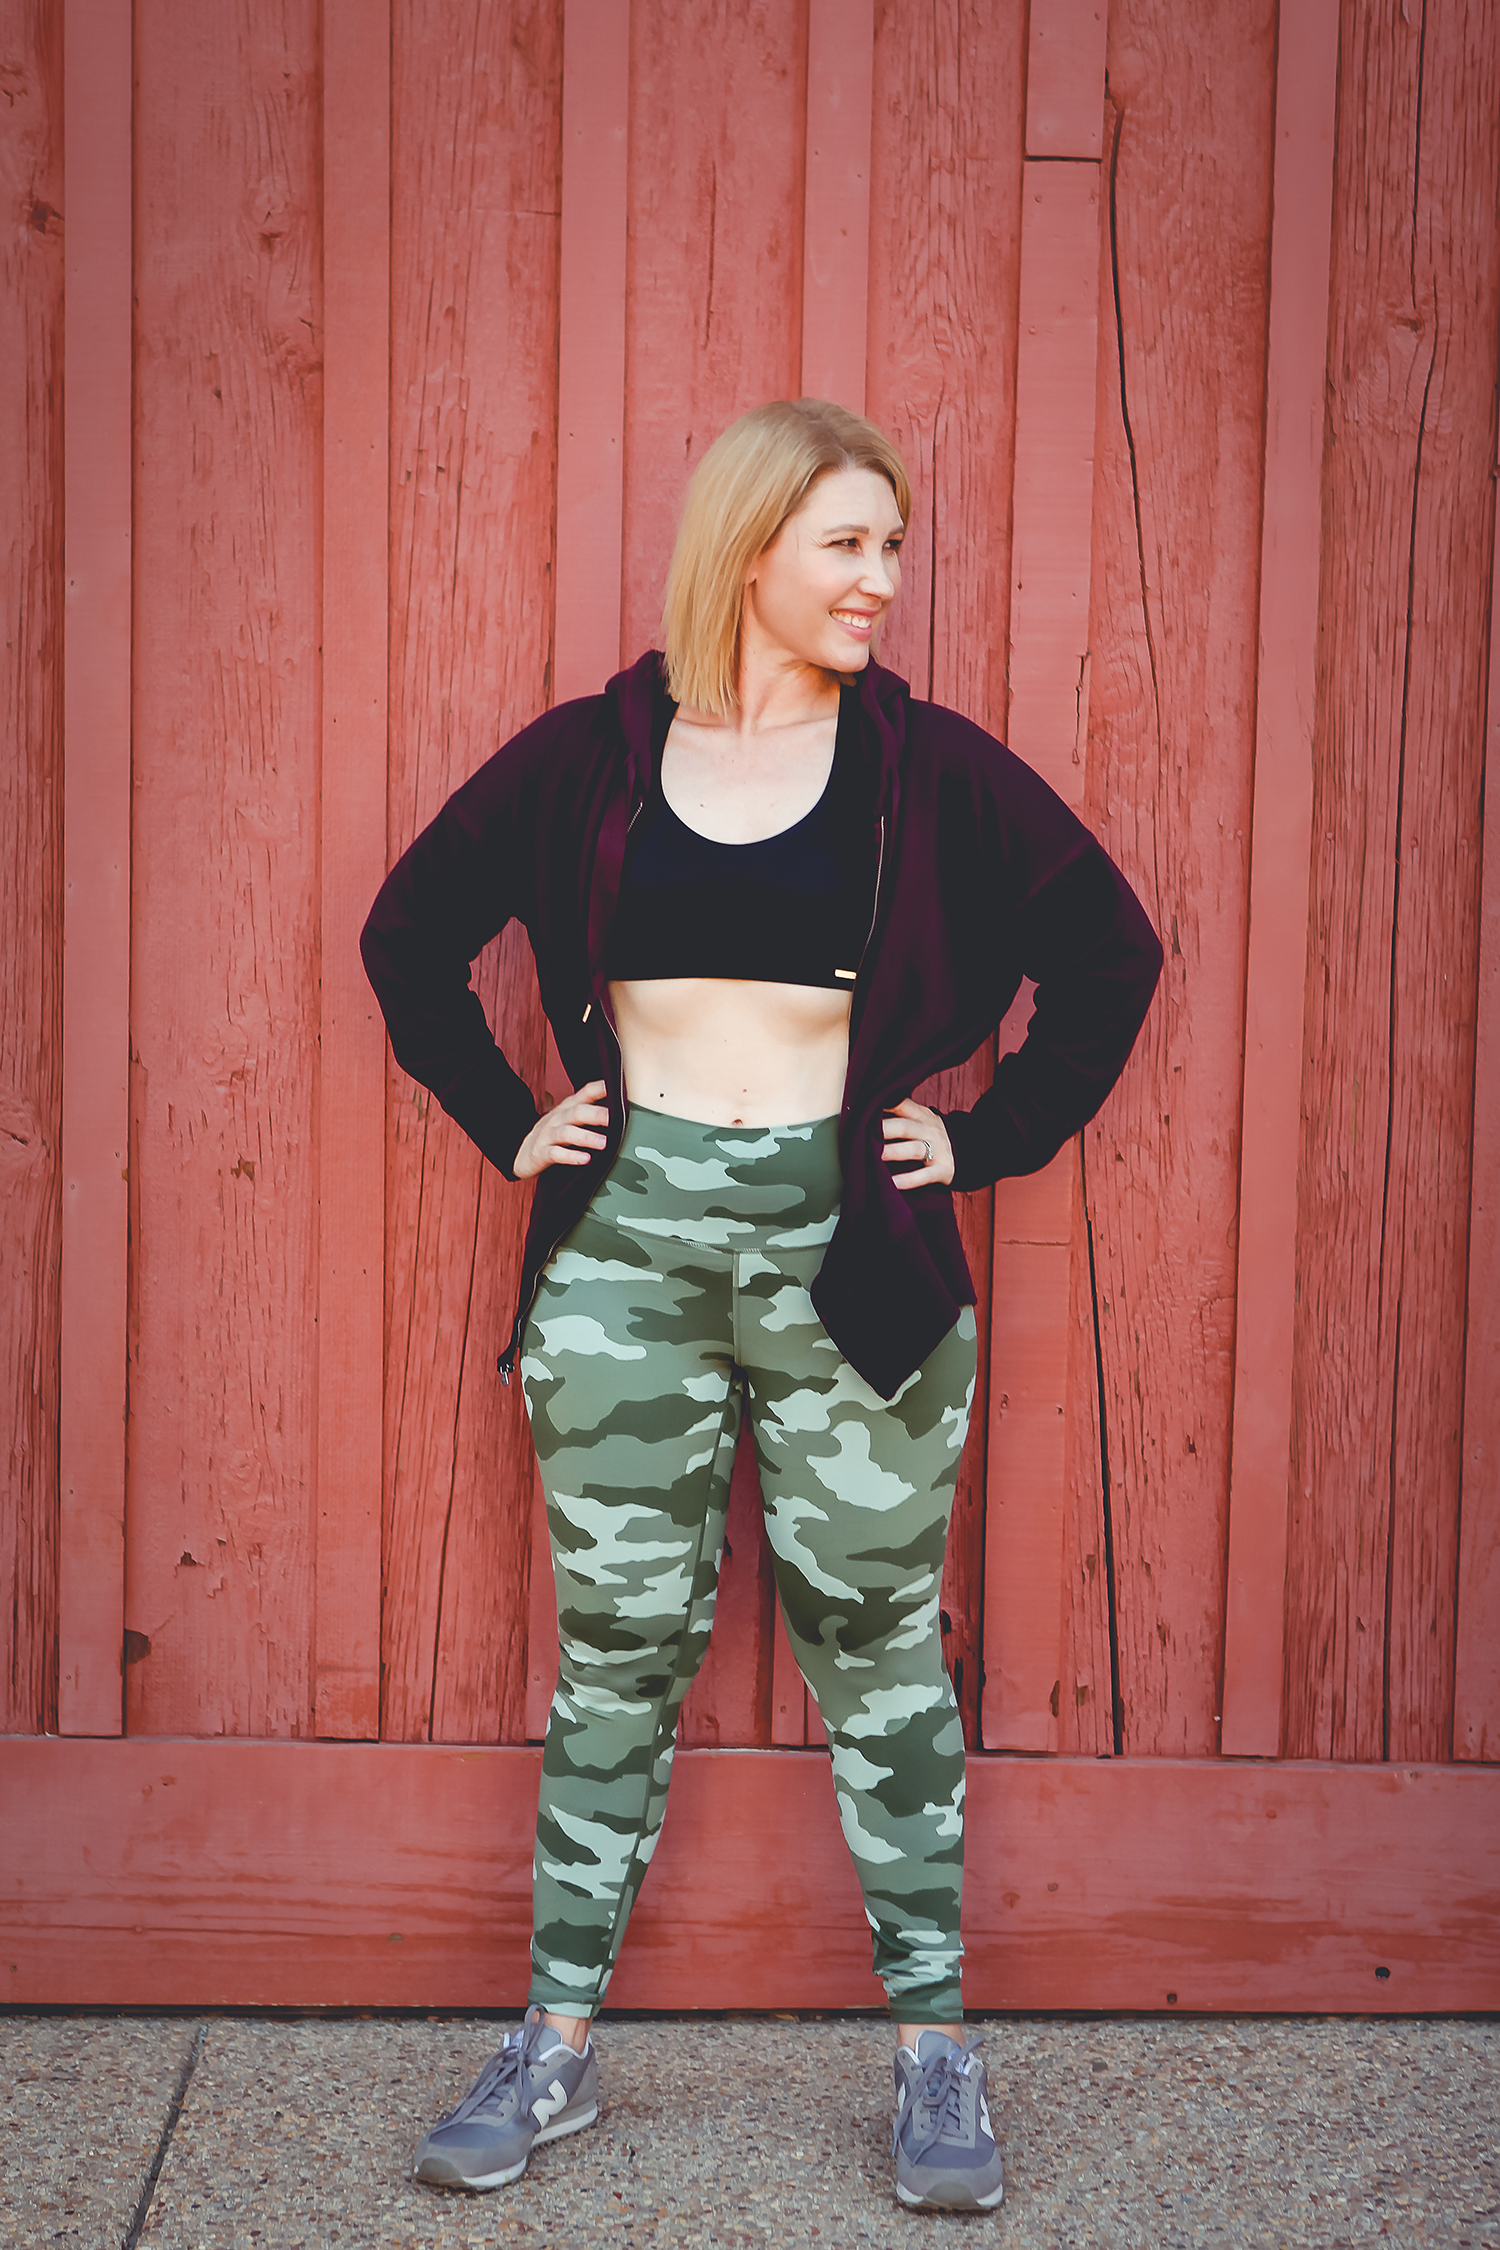 Are you looking for a little body positivity inspiration? This blogger gets real about why she DOESN'T want to lose weight.